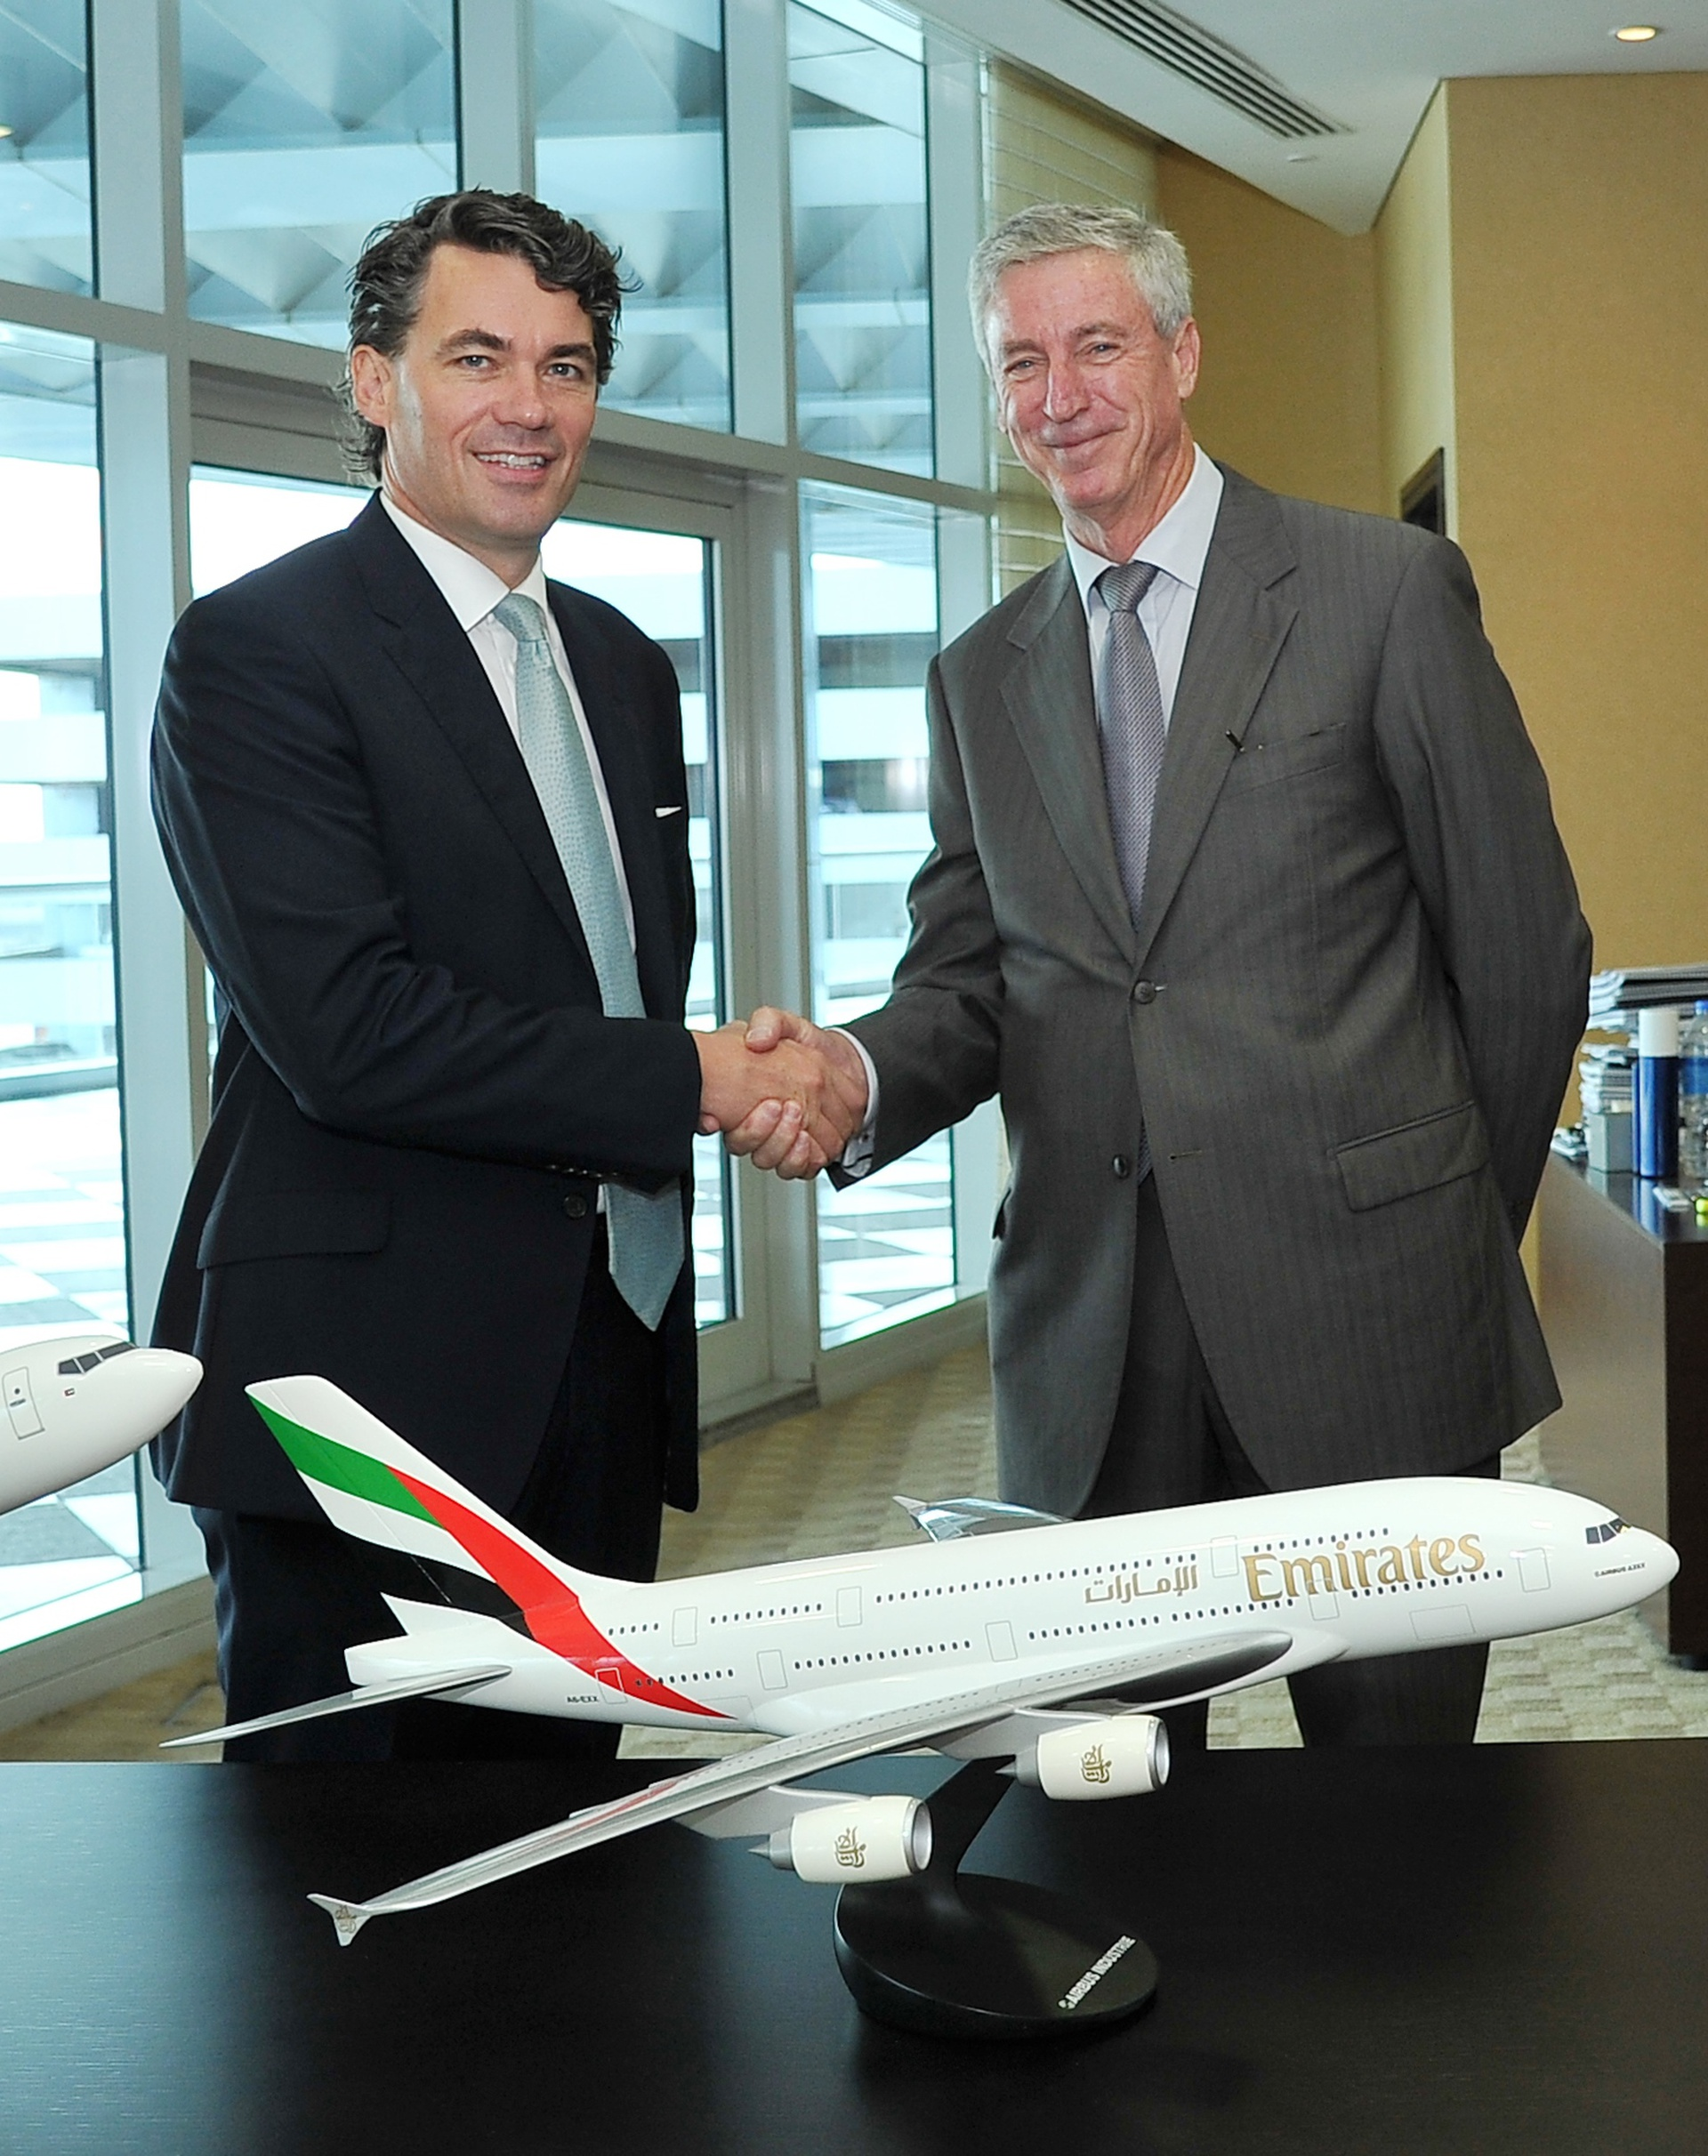 BT Group CEO Gavin Patterson and Emirates Group Services and dnata President Gary Chapman signing global contact centre contract in Dubai